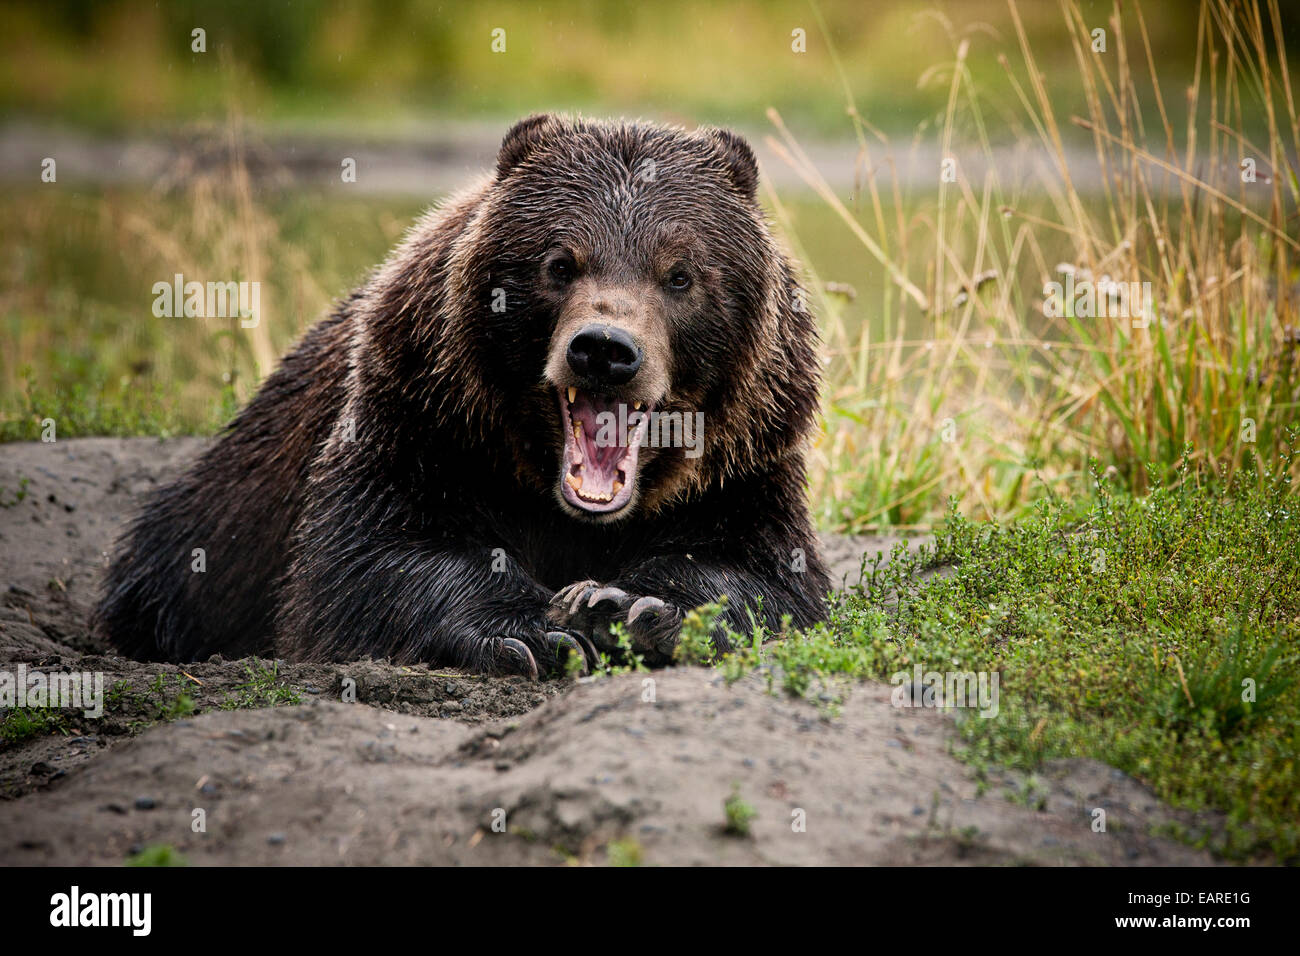 Grizzly Bear (Ursus arctos horribilis) with wide open jaws, threatening gesture, Valdez, Alaska, United States Stock Photo